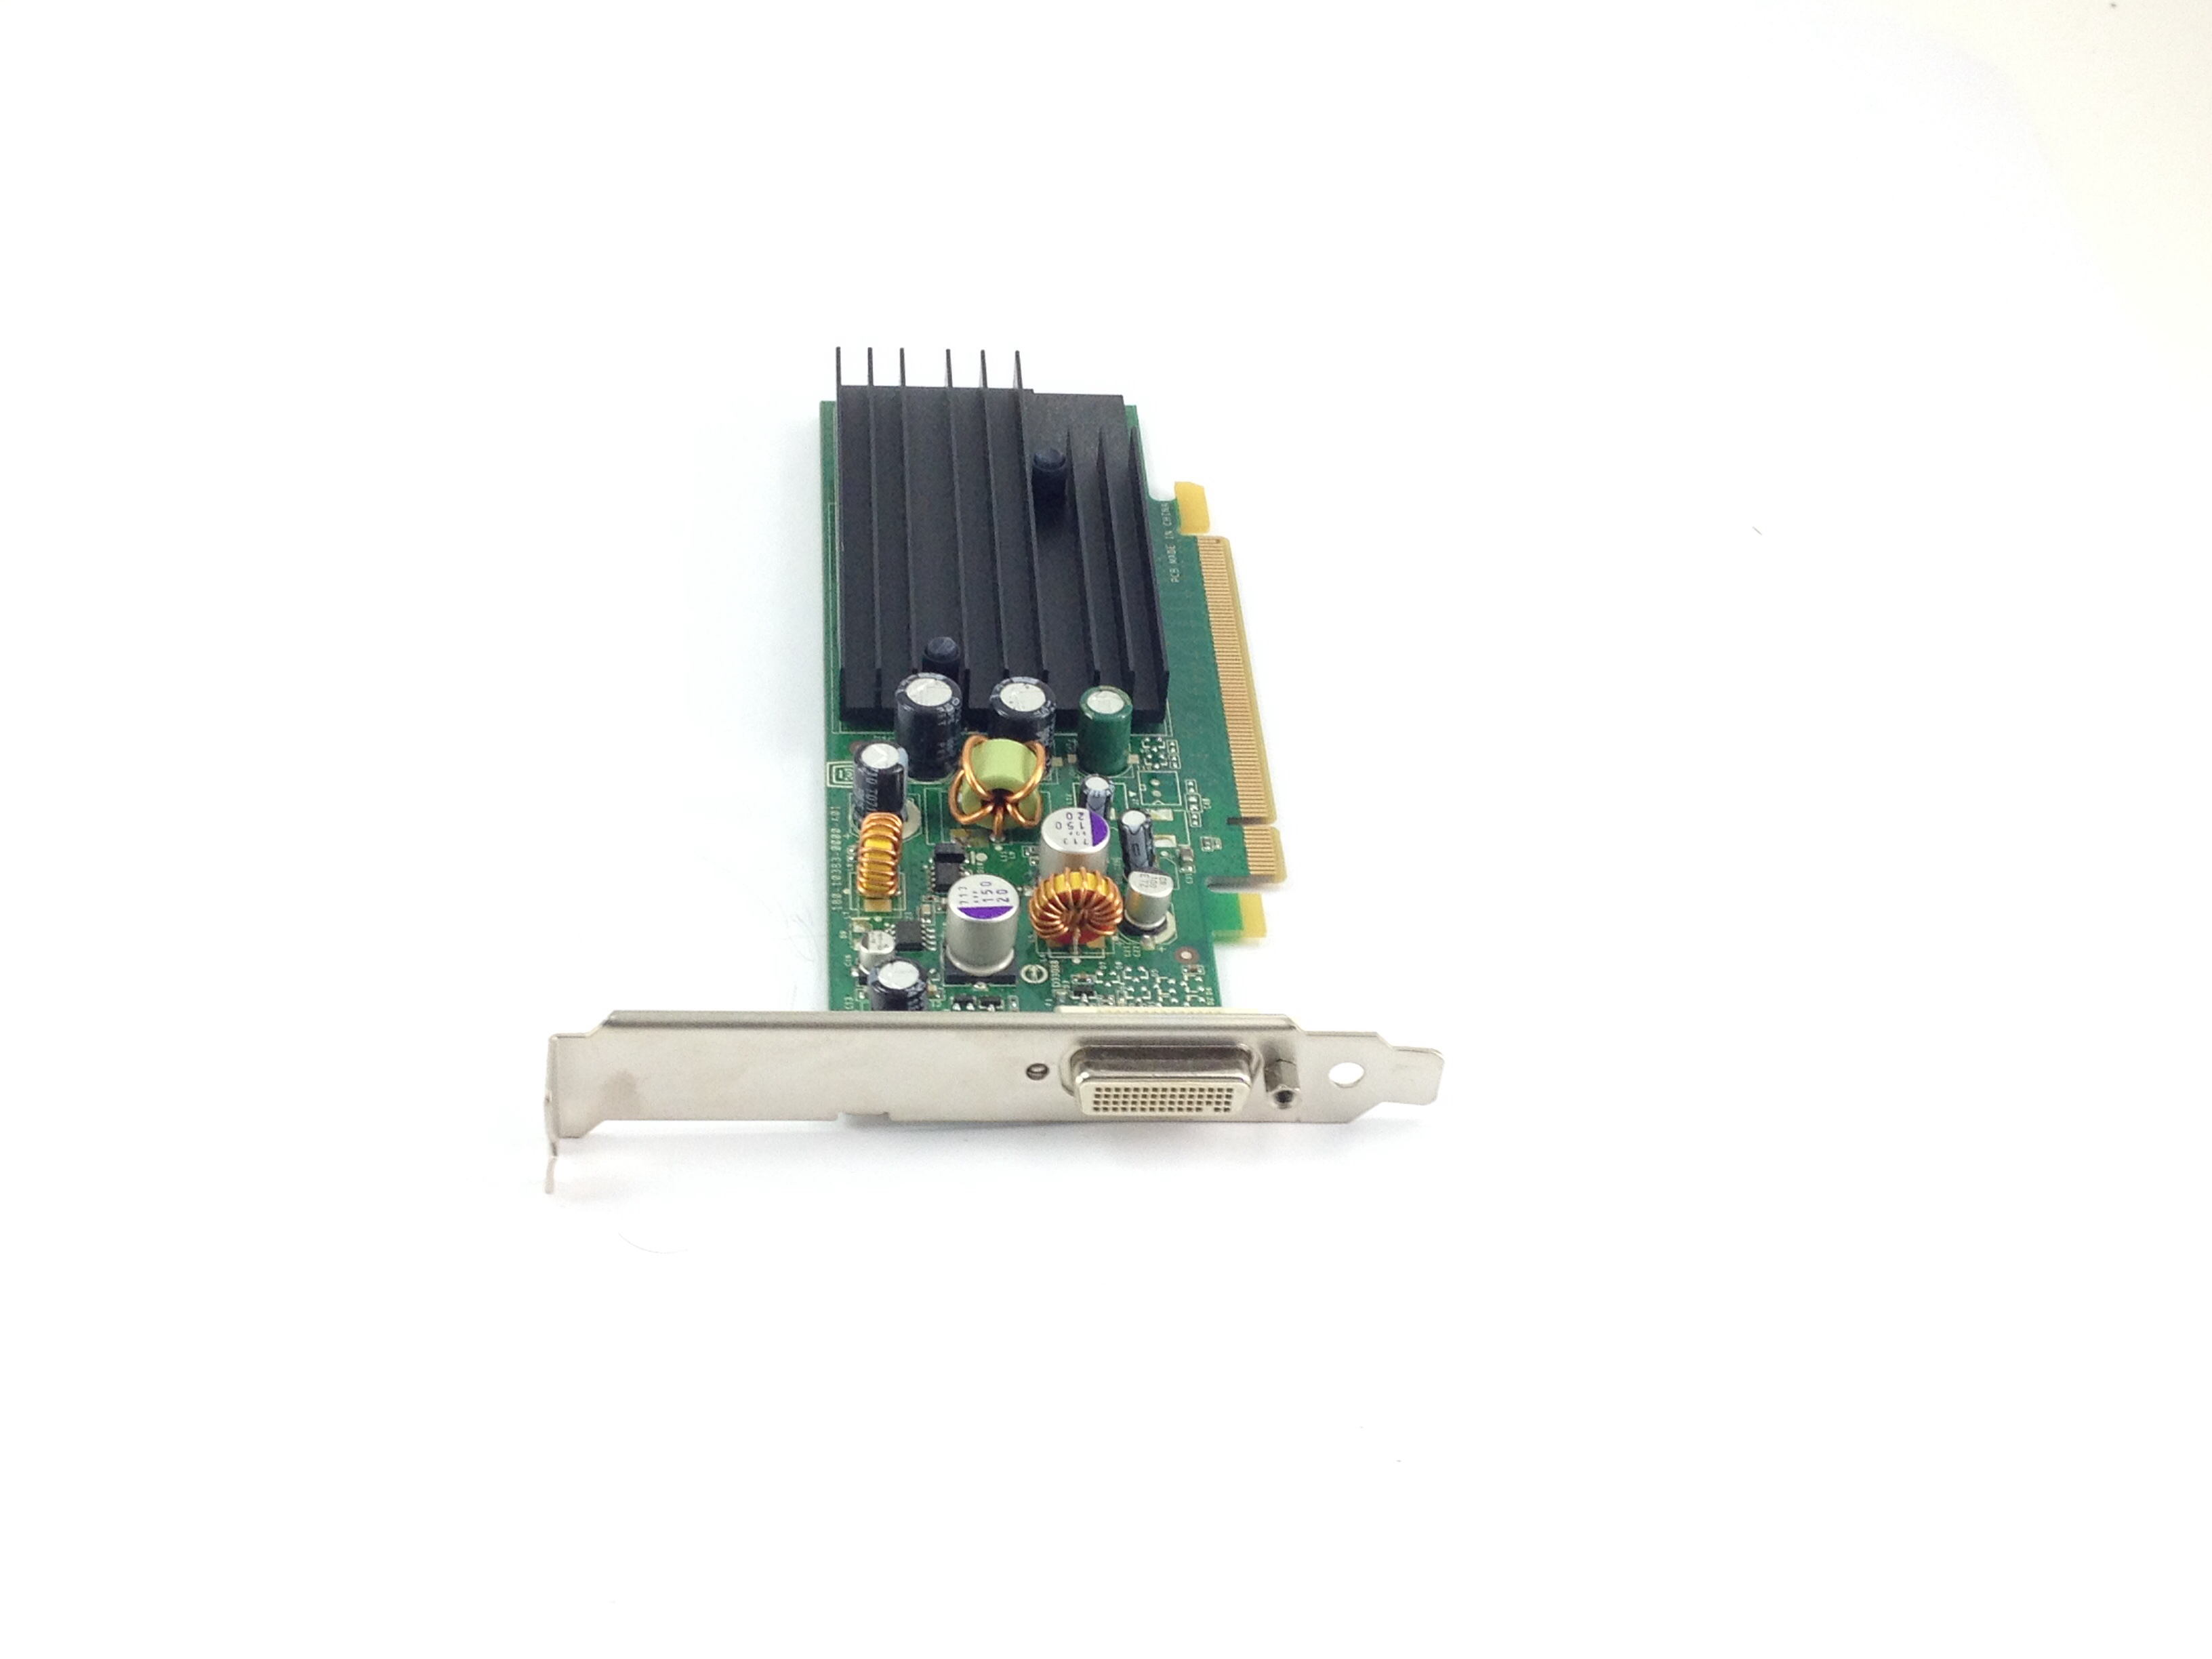 Quadro 128MB Nvs285 DDR2 PCI-E X16 Video Card (DH261)